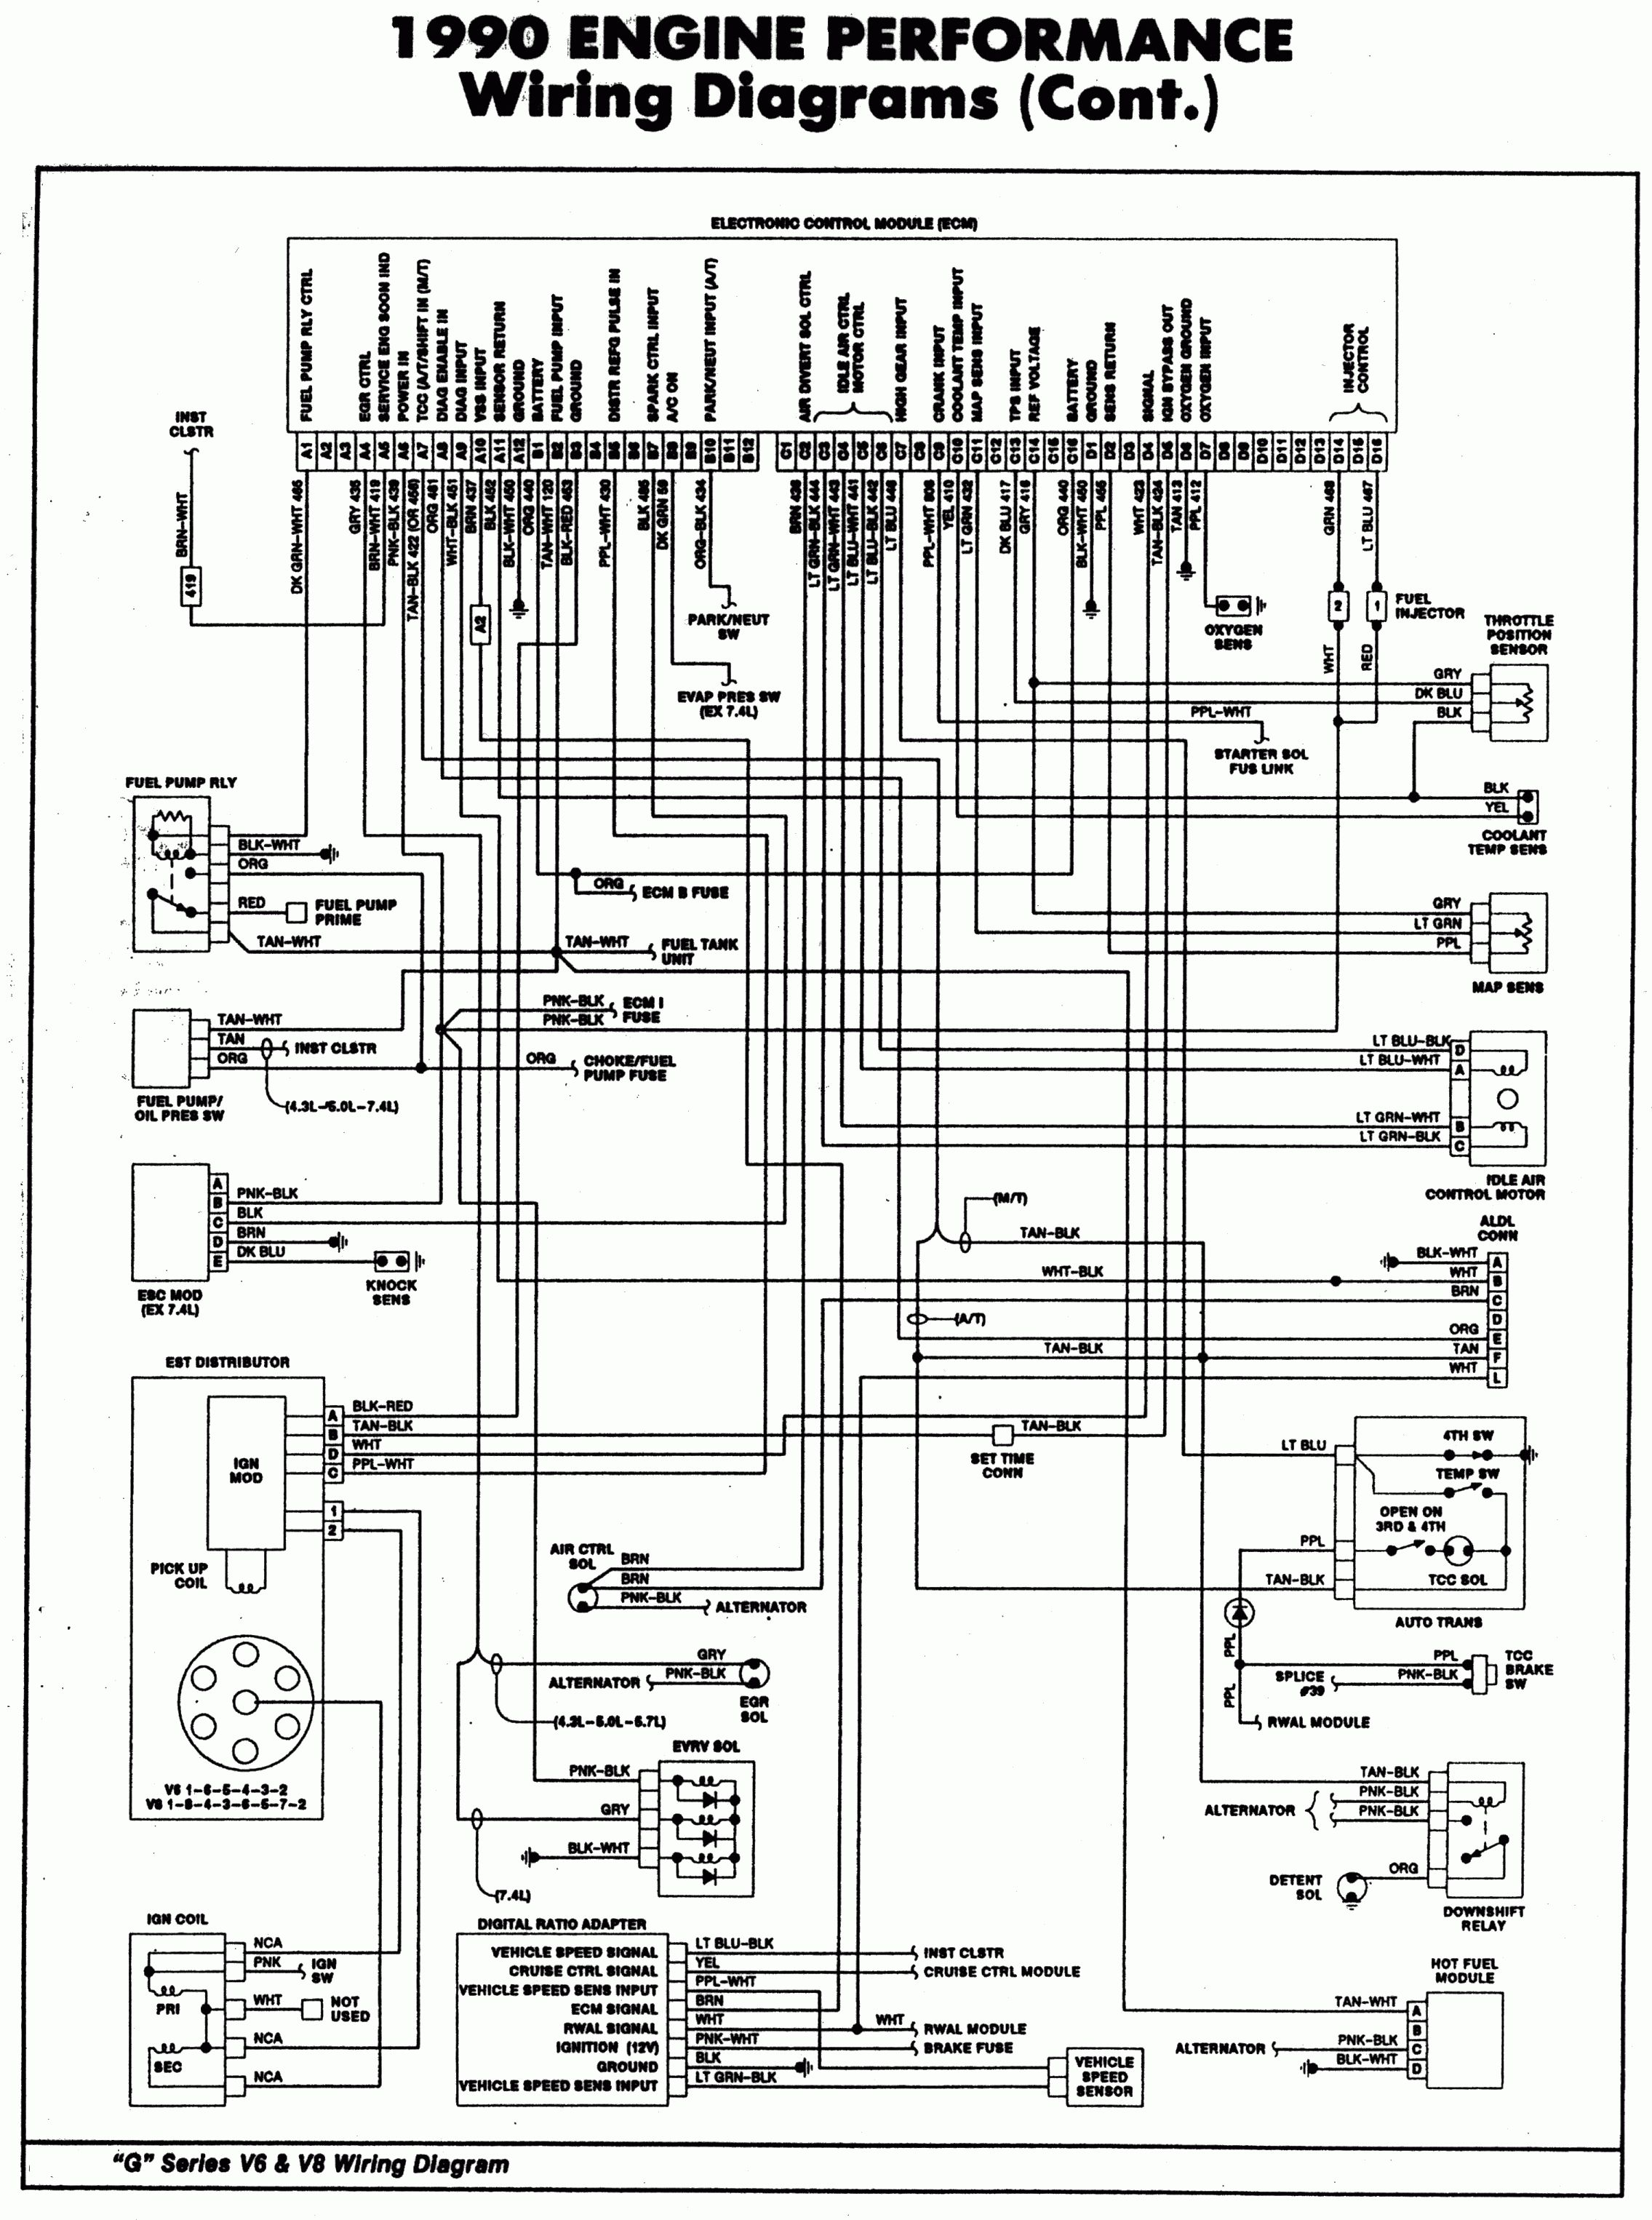 1990 Engine Performance Wiring Diagram With Control Module And Pertaining To Throttle Position Sensor Wiring Diagram Teknik Mesin Teknik Tips